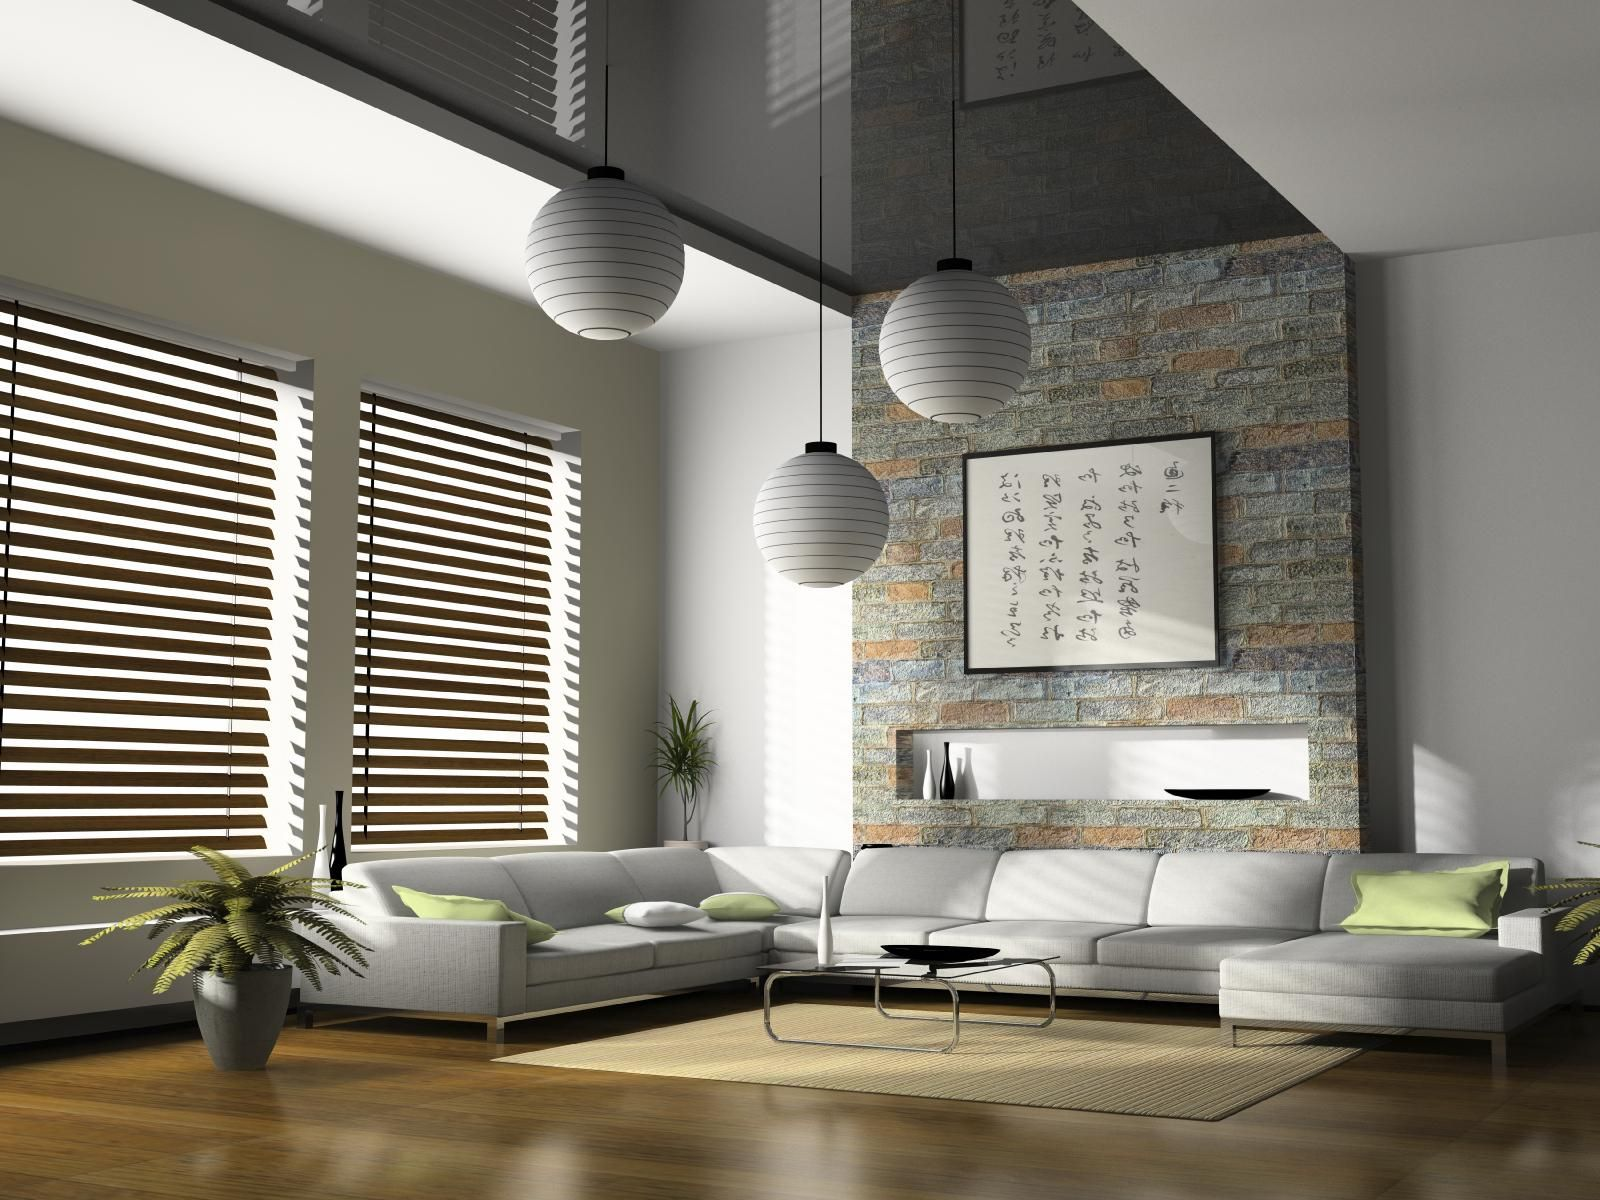 Fashionable Window Blinds Design In Modern Style Living Room